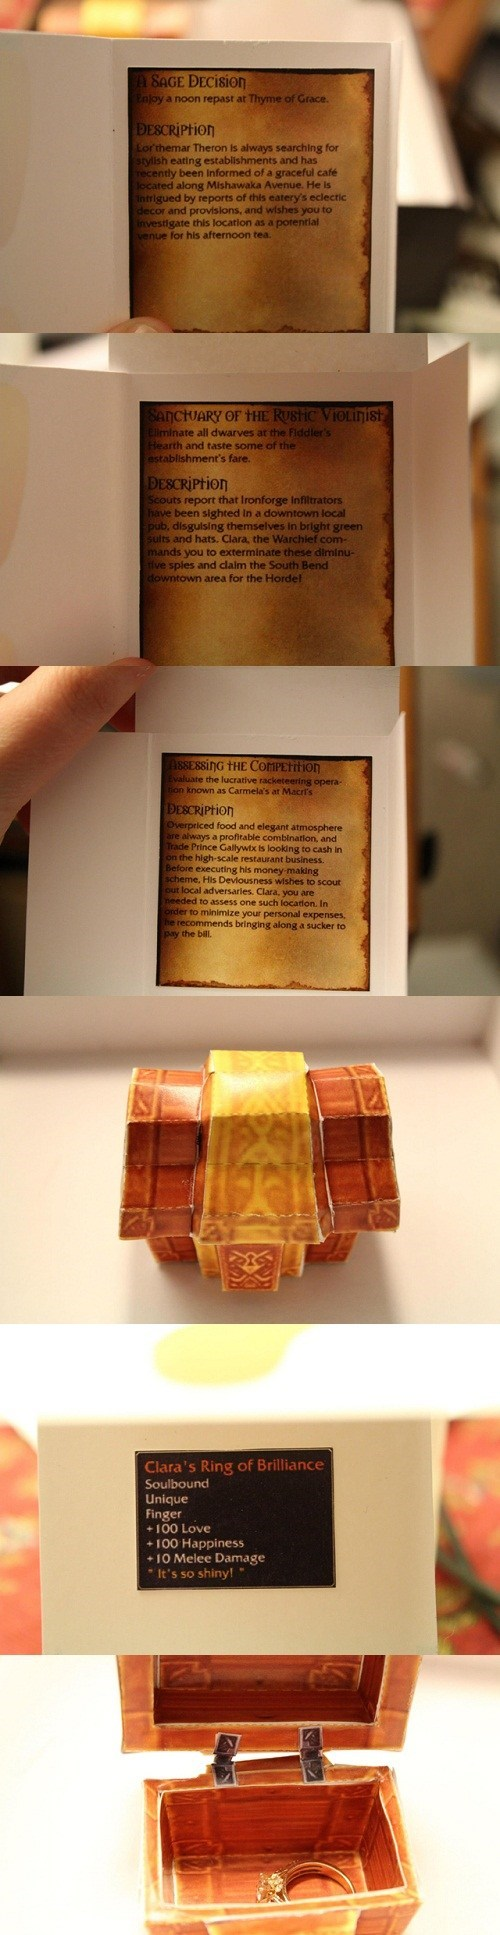 world of warcraft IRL quests couples engagement video games marriages - 7155908864